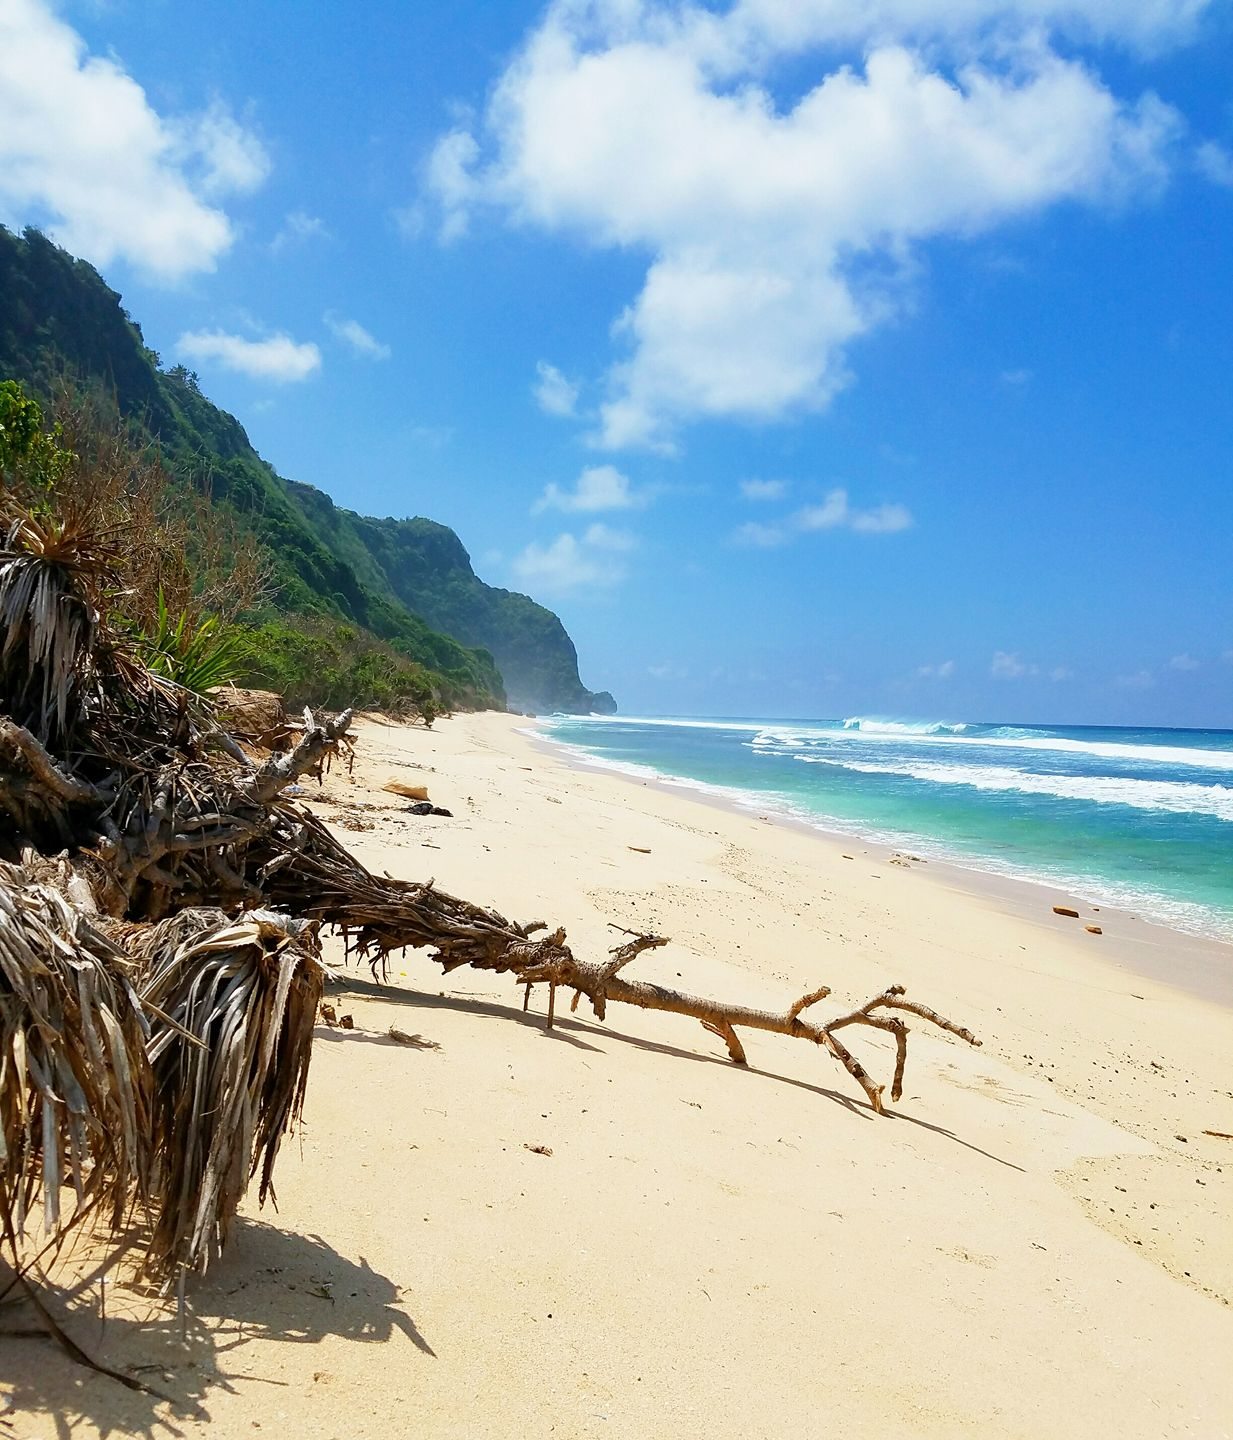 A guide to 3 beaches in Southern Bali: Nyang Nyang, Bingin, & Geger!